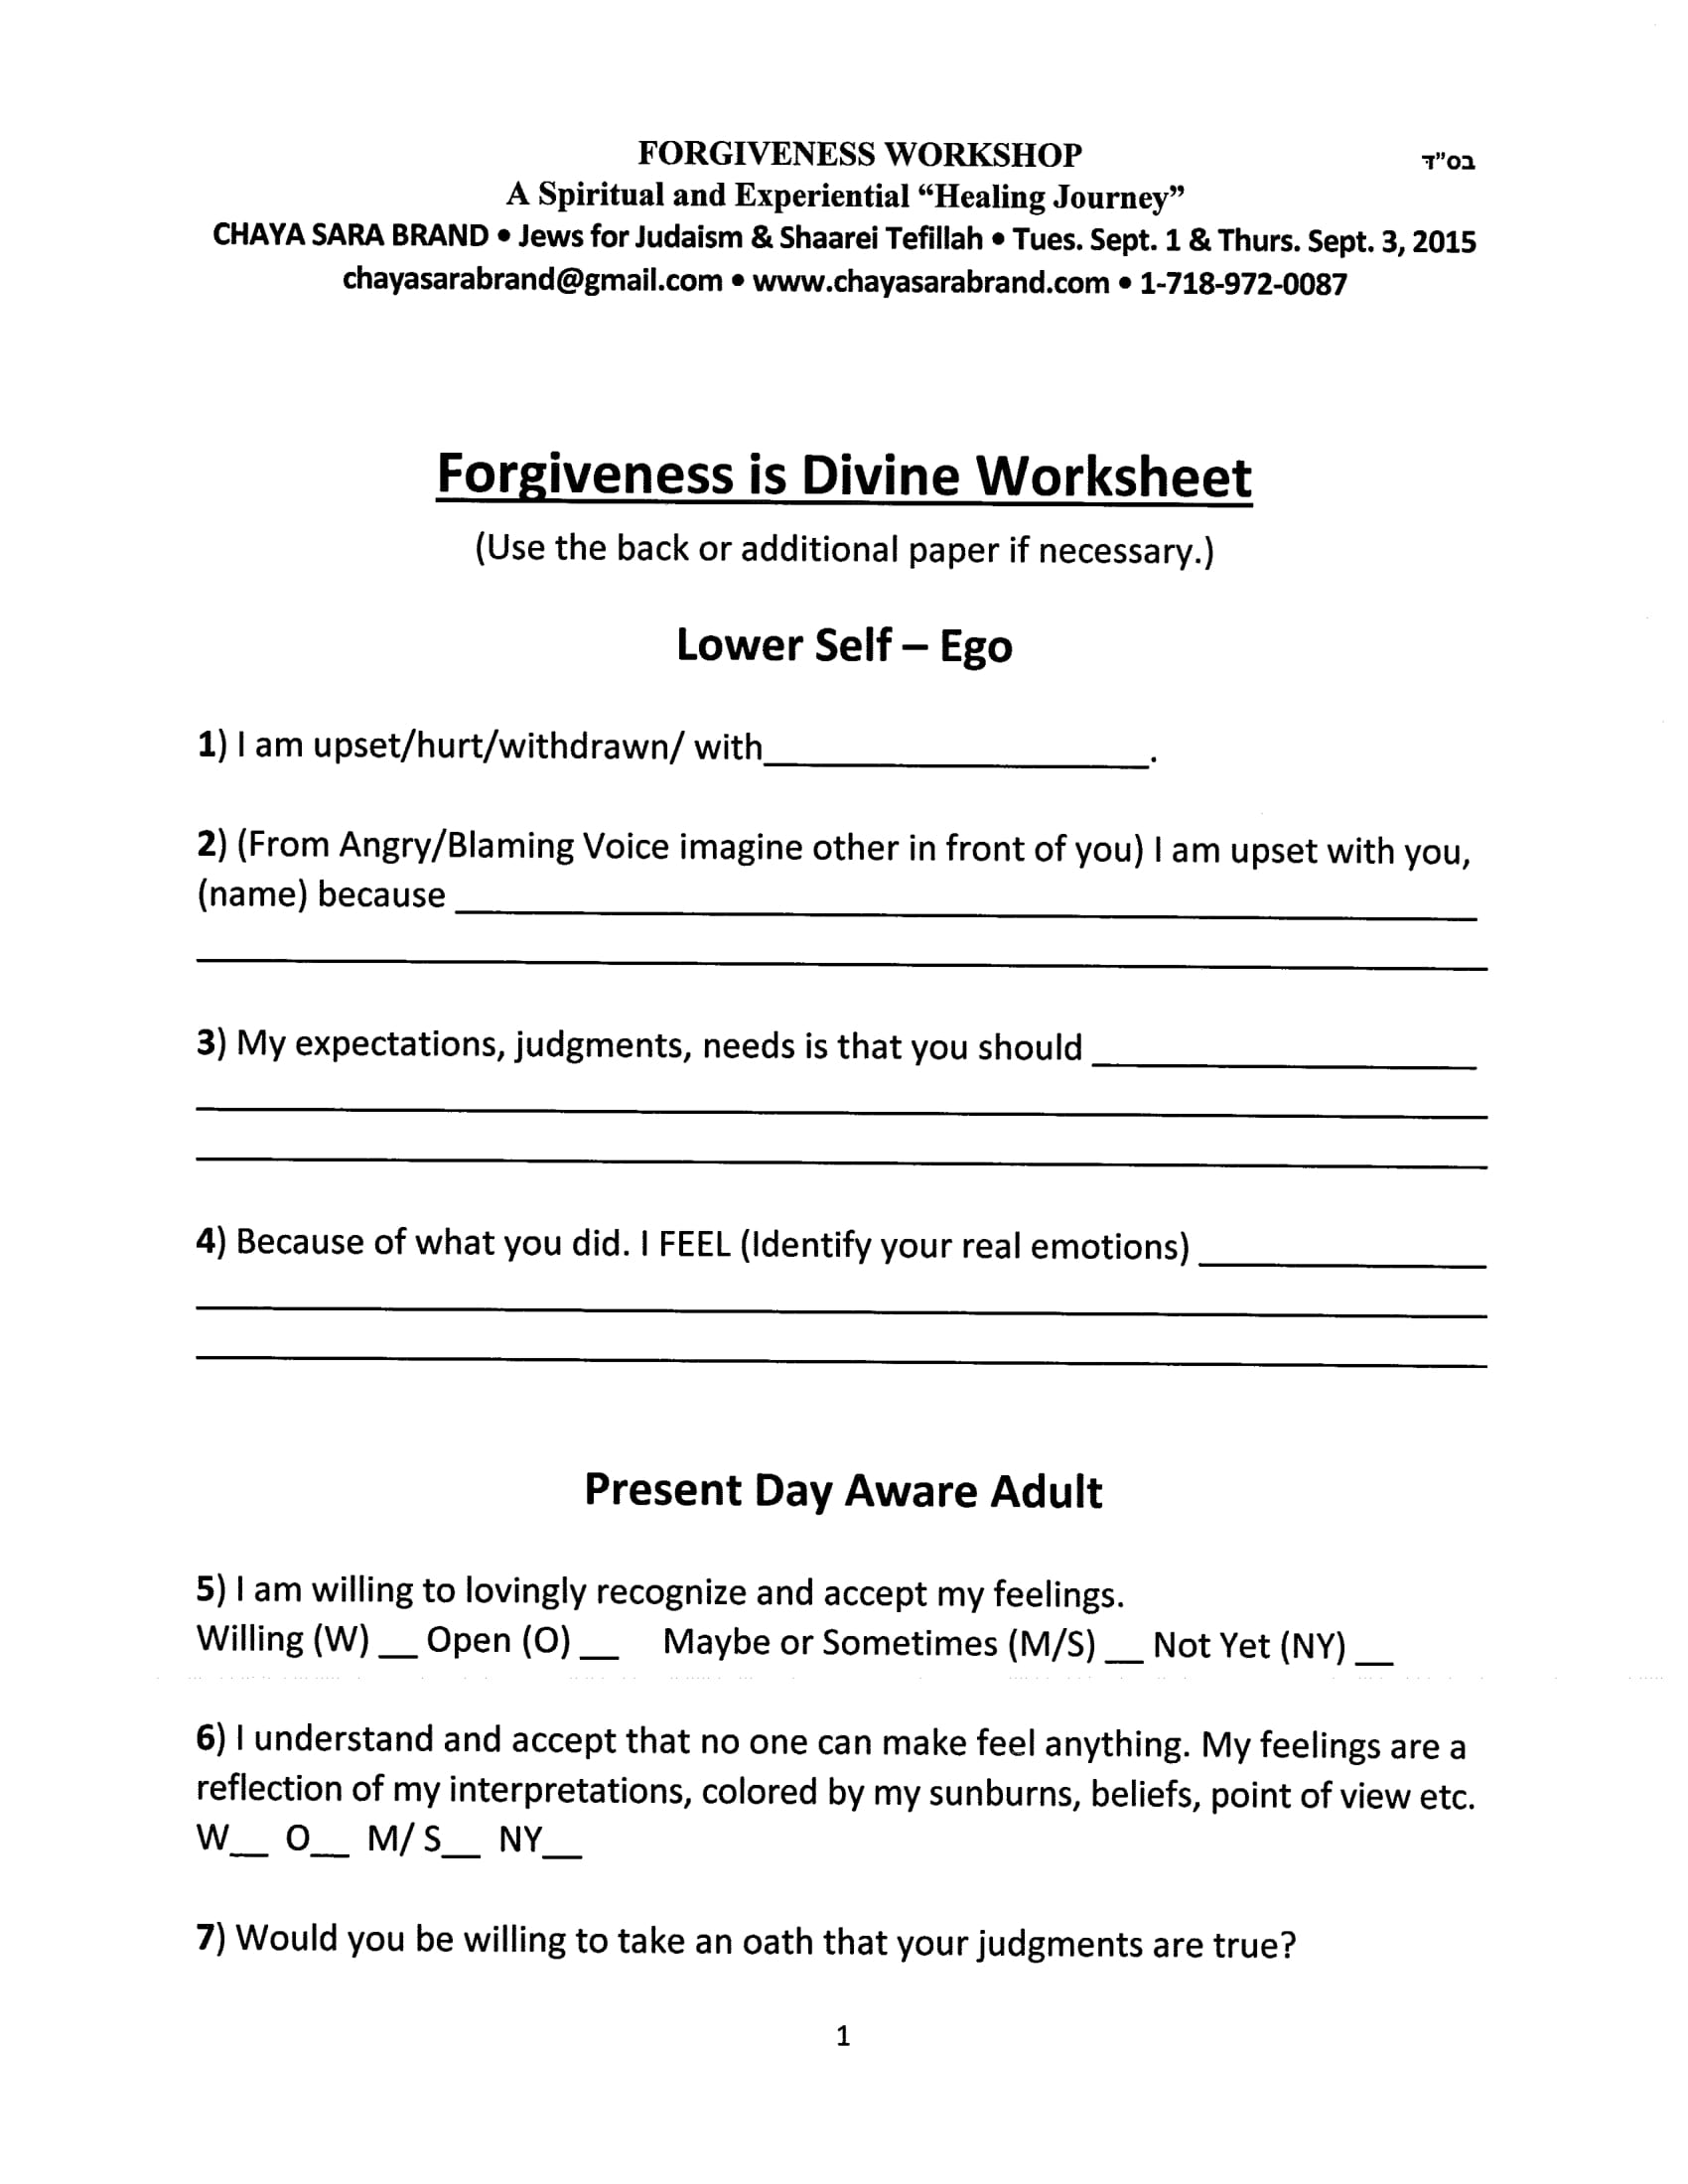 Forgiveness Worksheet